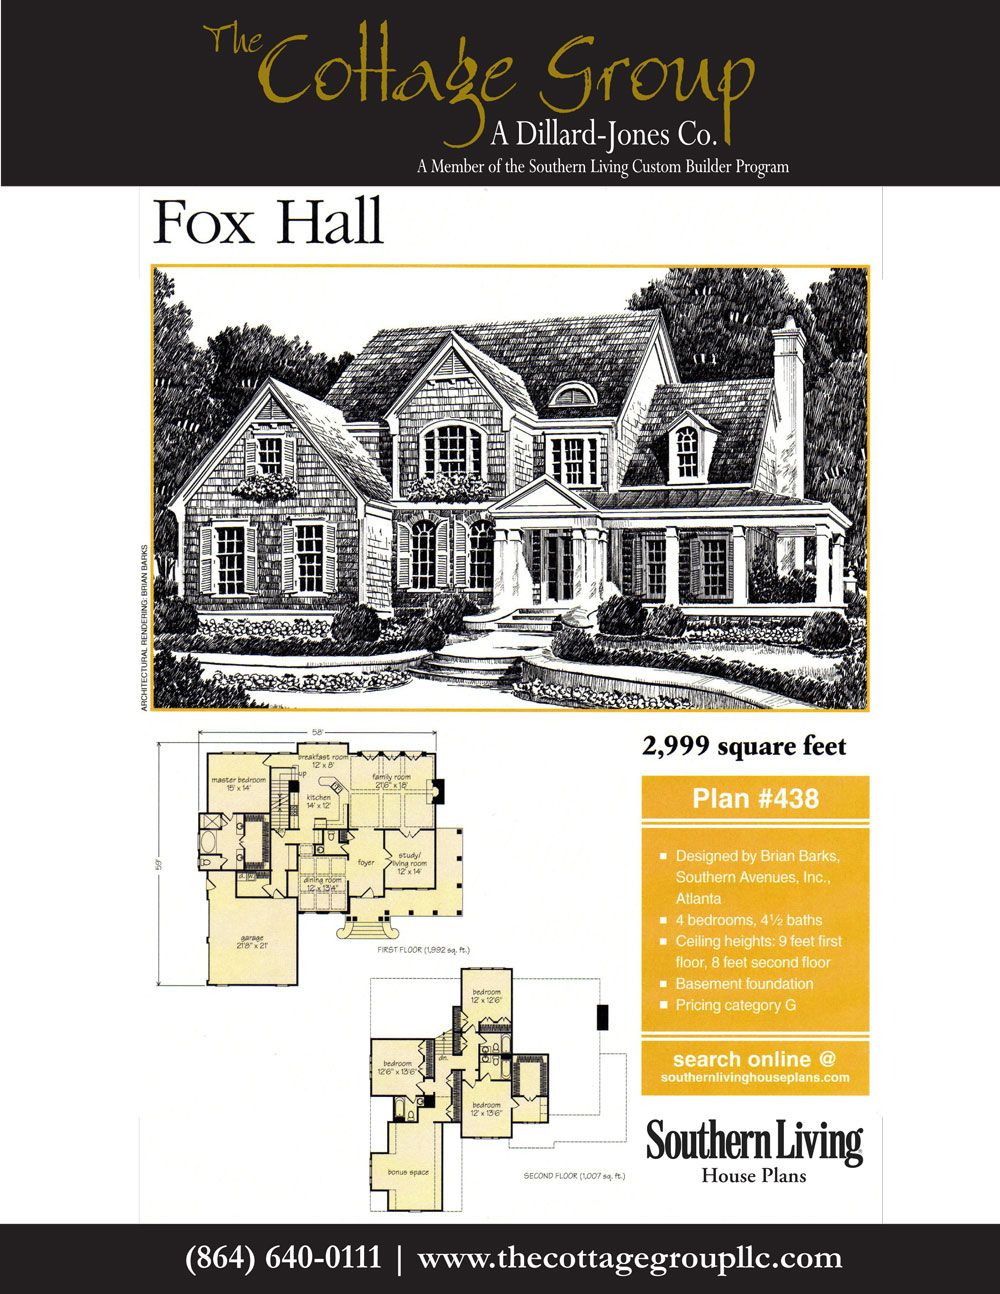 Fox Hall : The Cottage Group | Southern Living House Plans ...